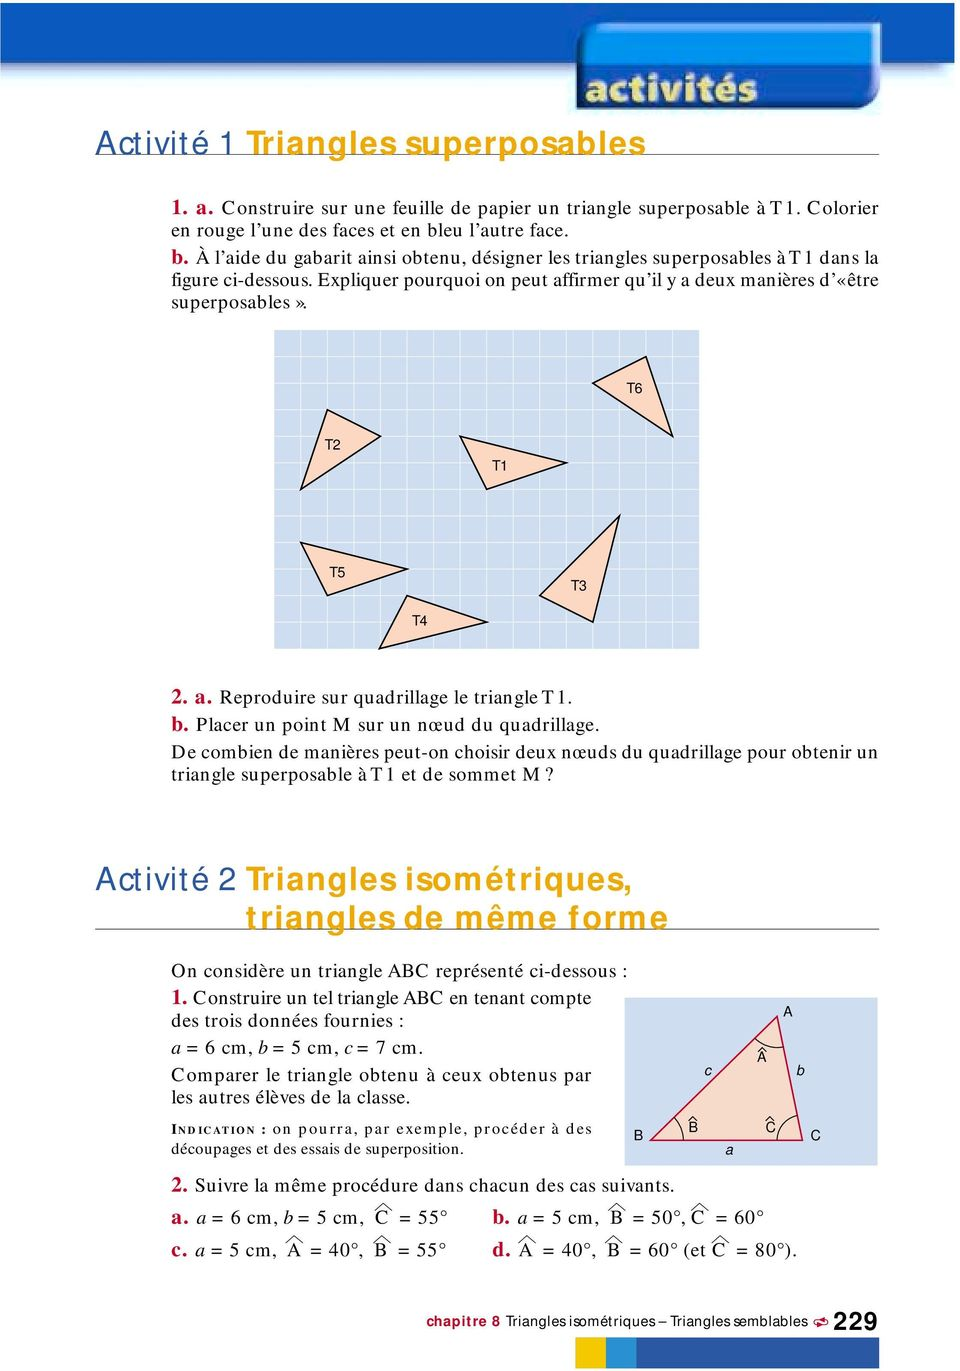 xpliquer pourquoi on peut affirmer qu il y a deux manières d «être superposables». T6 T2 T1 T5 T3 T4 2. a. Reproduire sur quadrillage le triangle T1. b. Placer un point sur un nœud du quadrillage.